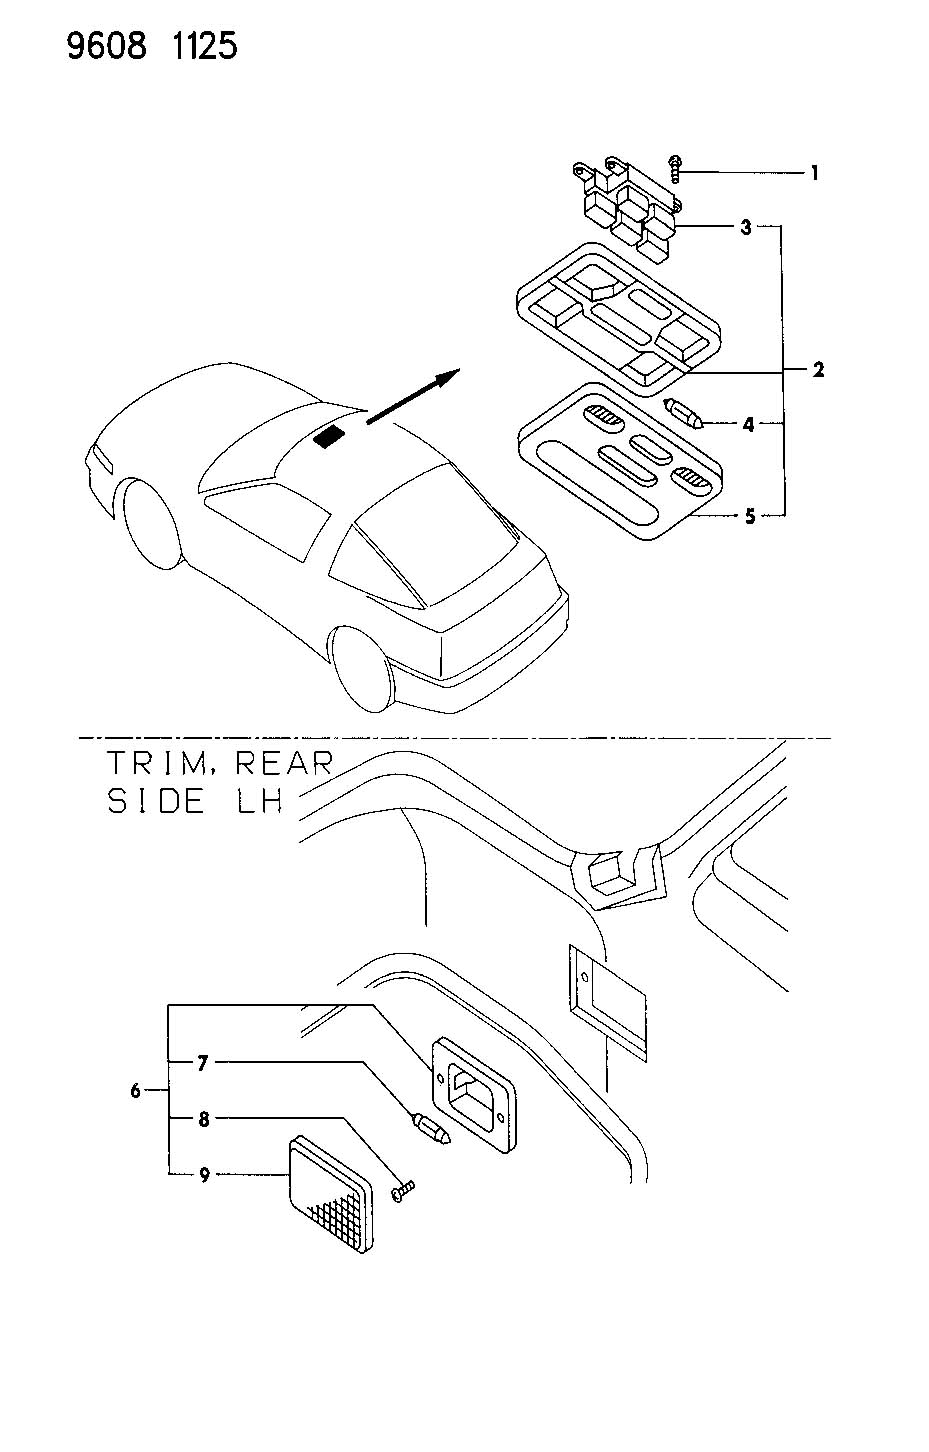 Wiring Diagram 1990 Eagle Talon Turbo Awd Question About 96 Tsi Fuse Box Vision 1996